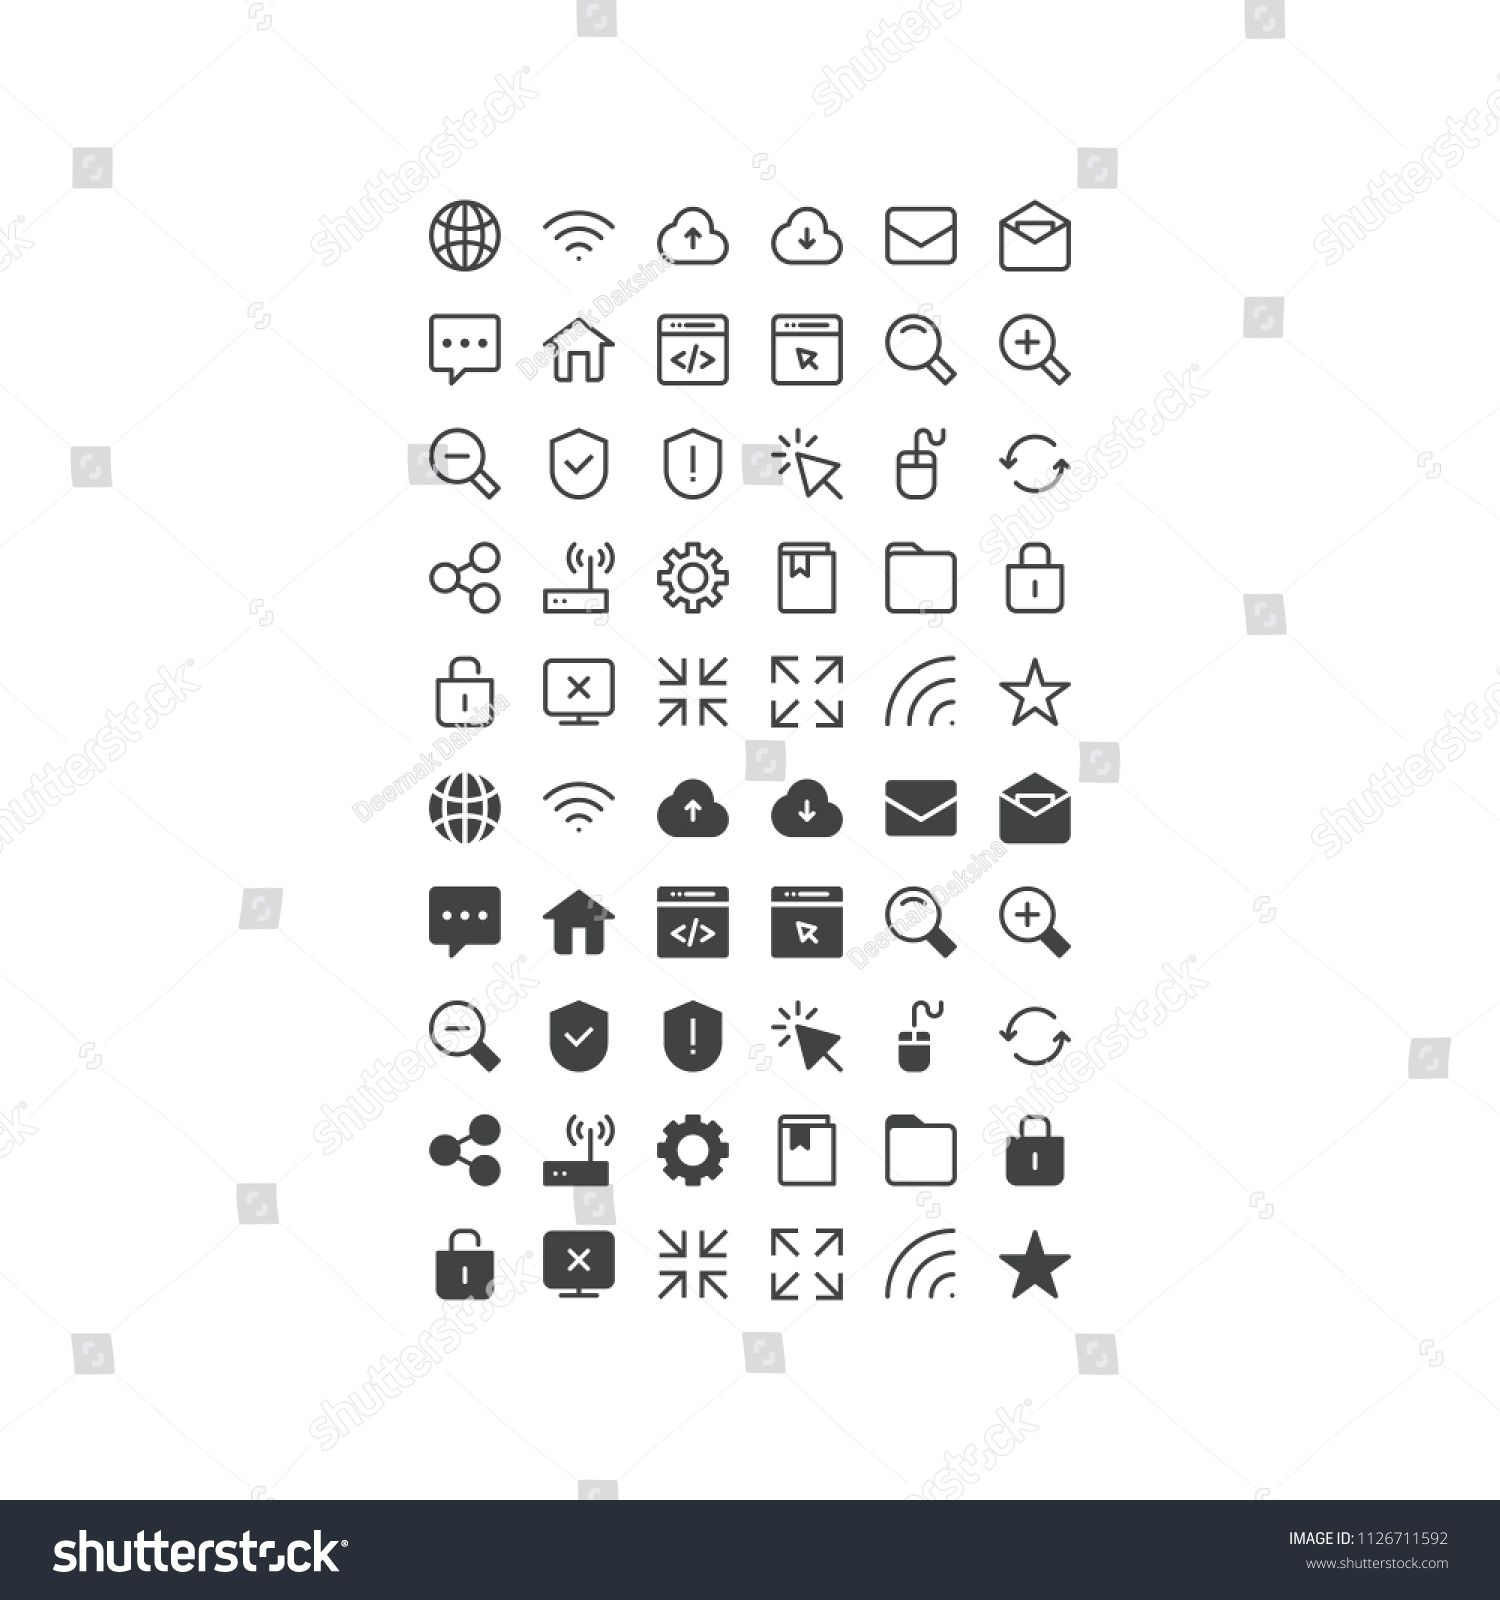 Computer Internet Icon Set Internet Technology Network Communication Web Computer Connection World Internet Icon Icon Set Design Computer Internet